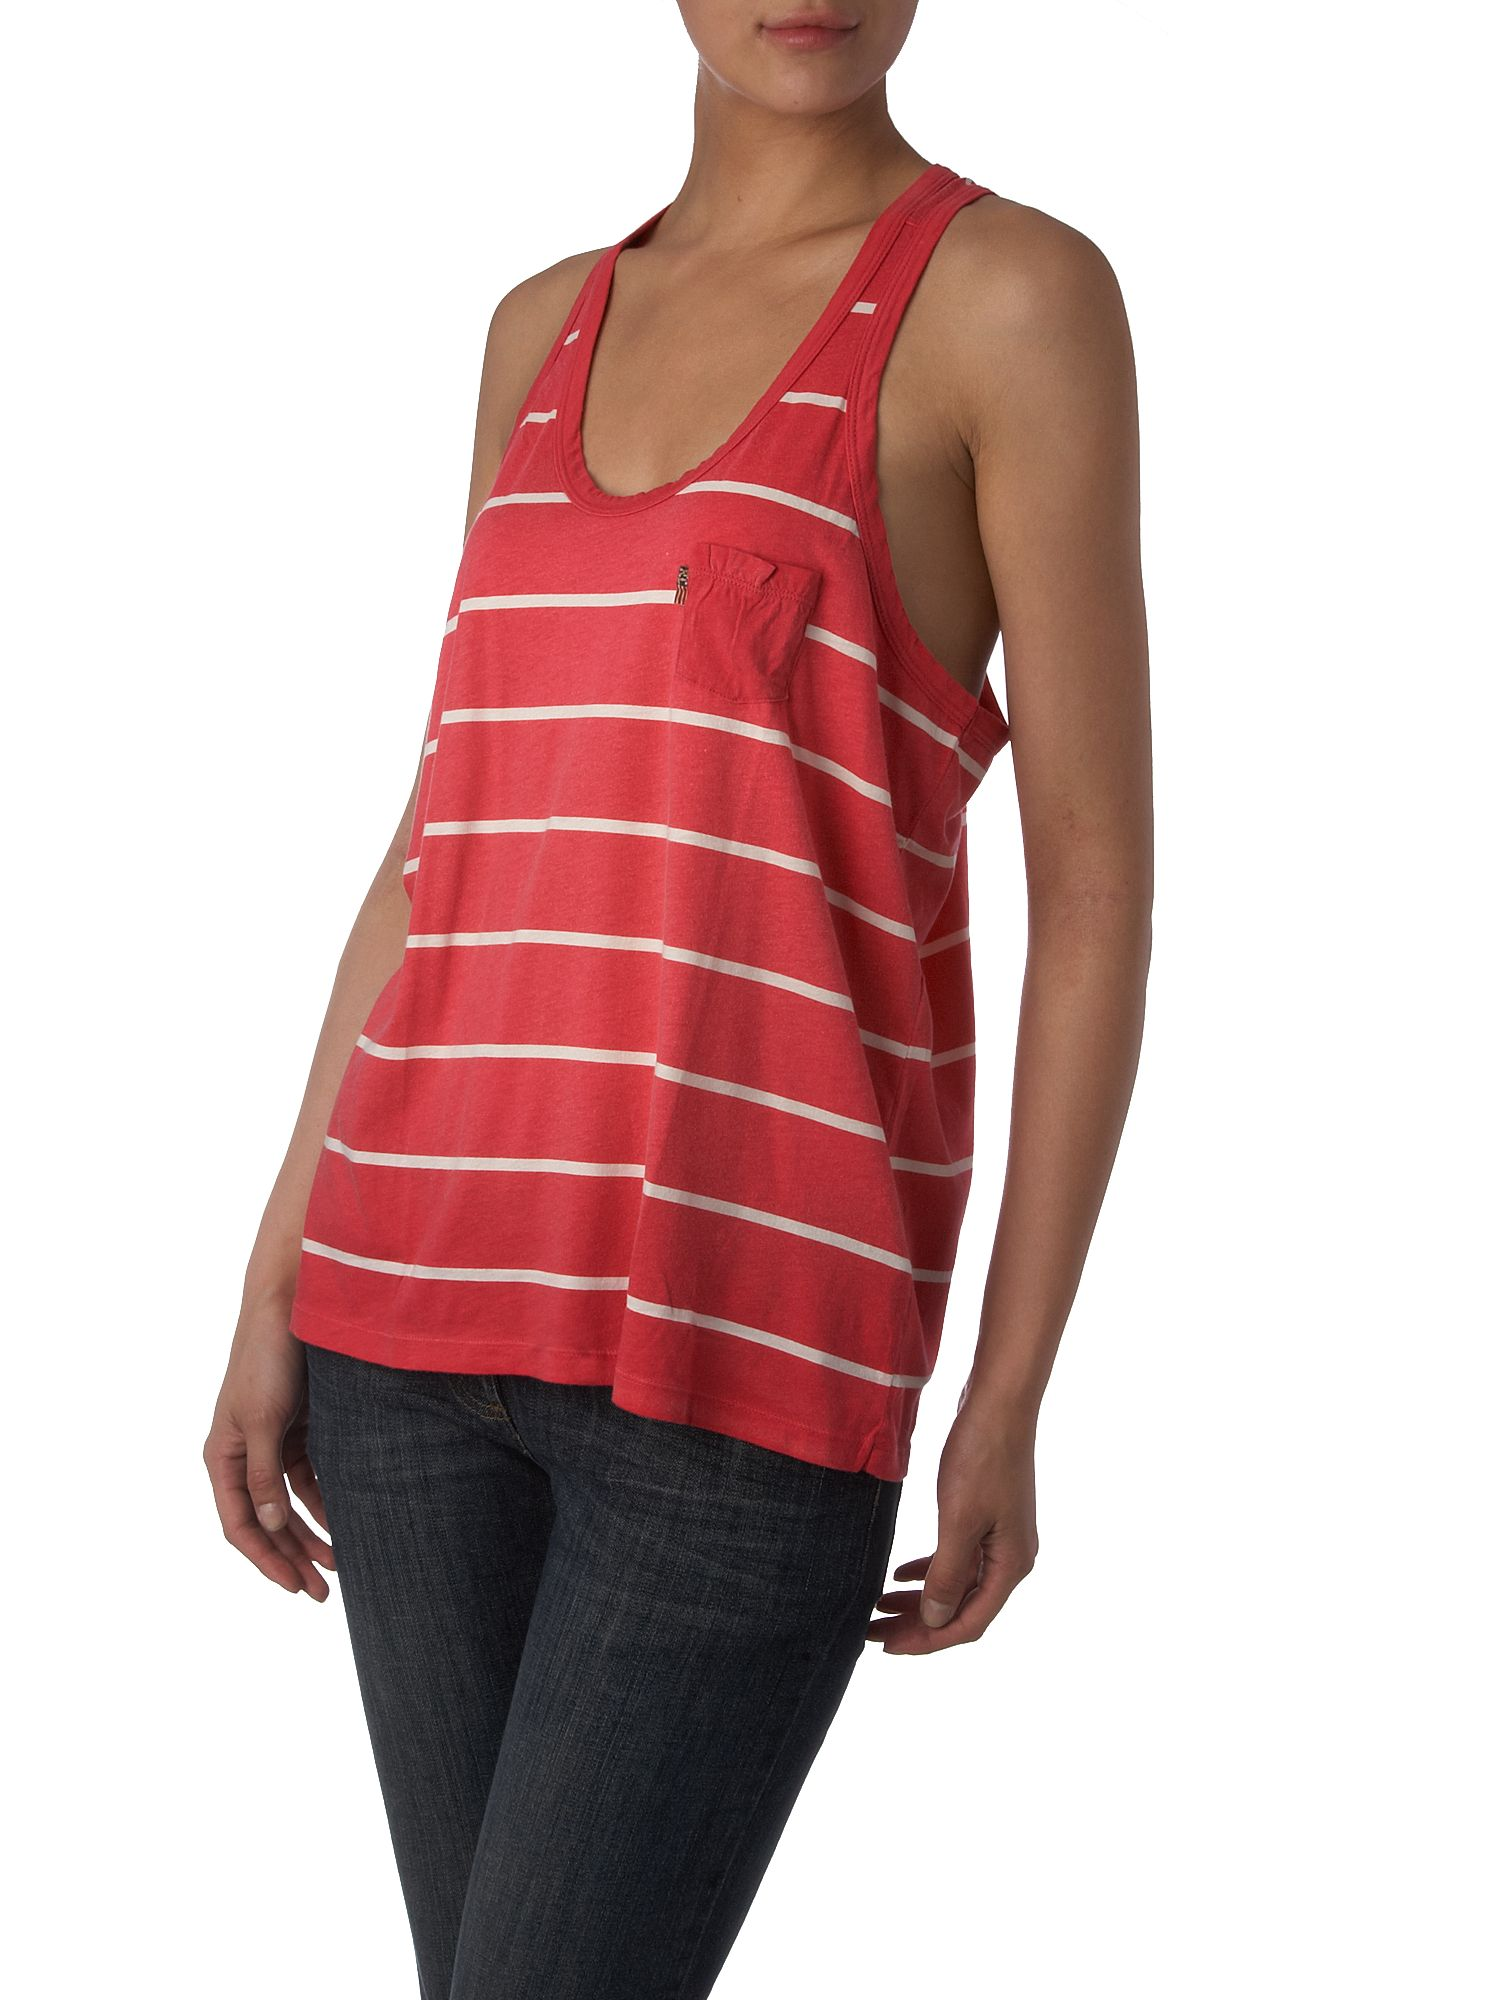 Polo Jeans Striped tank tee Pink product image